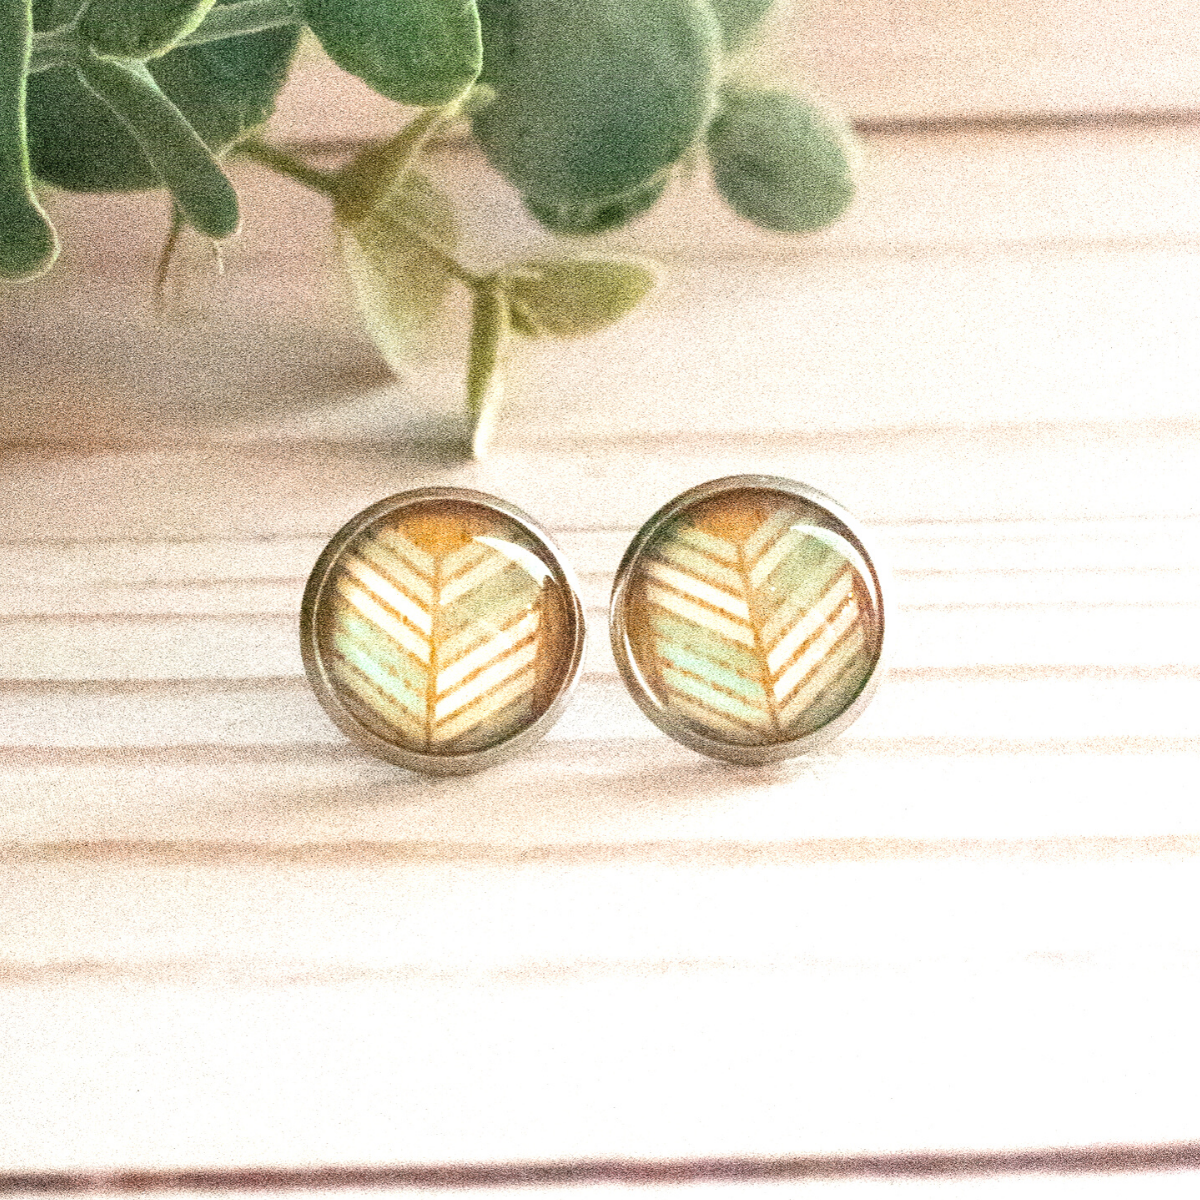 AQUA & WOOD HERRINGBONE EARRINGS